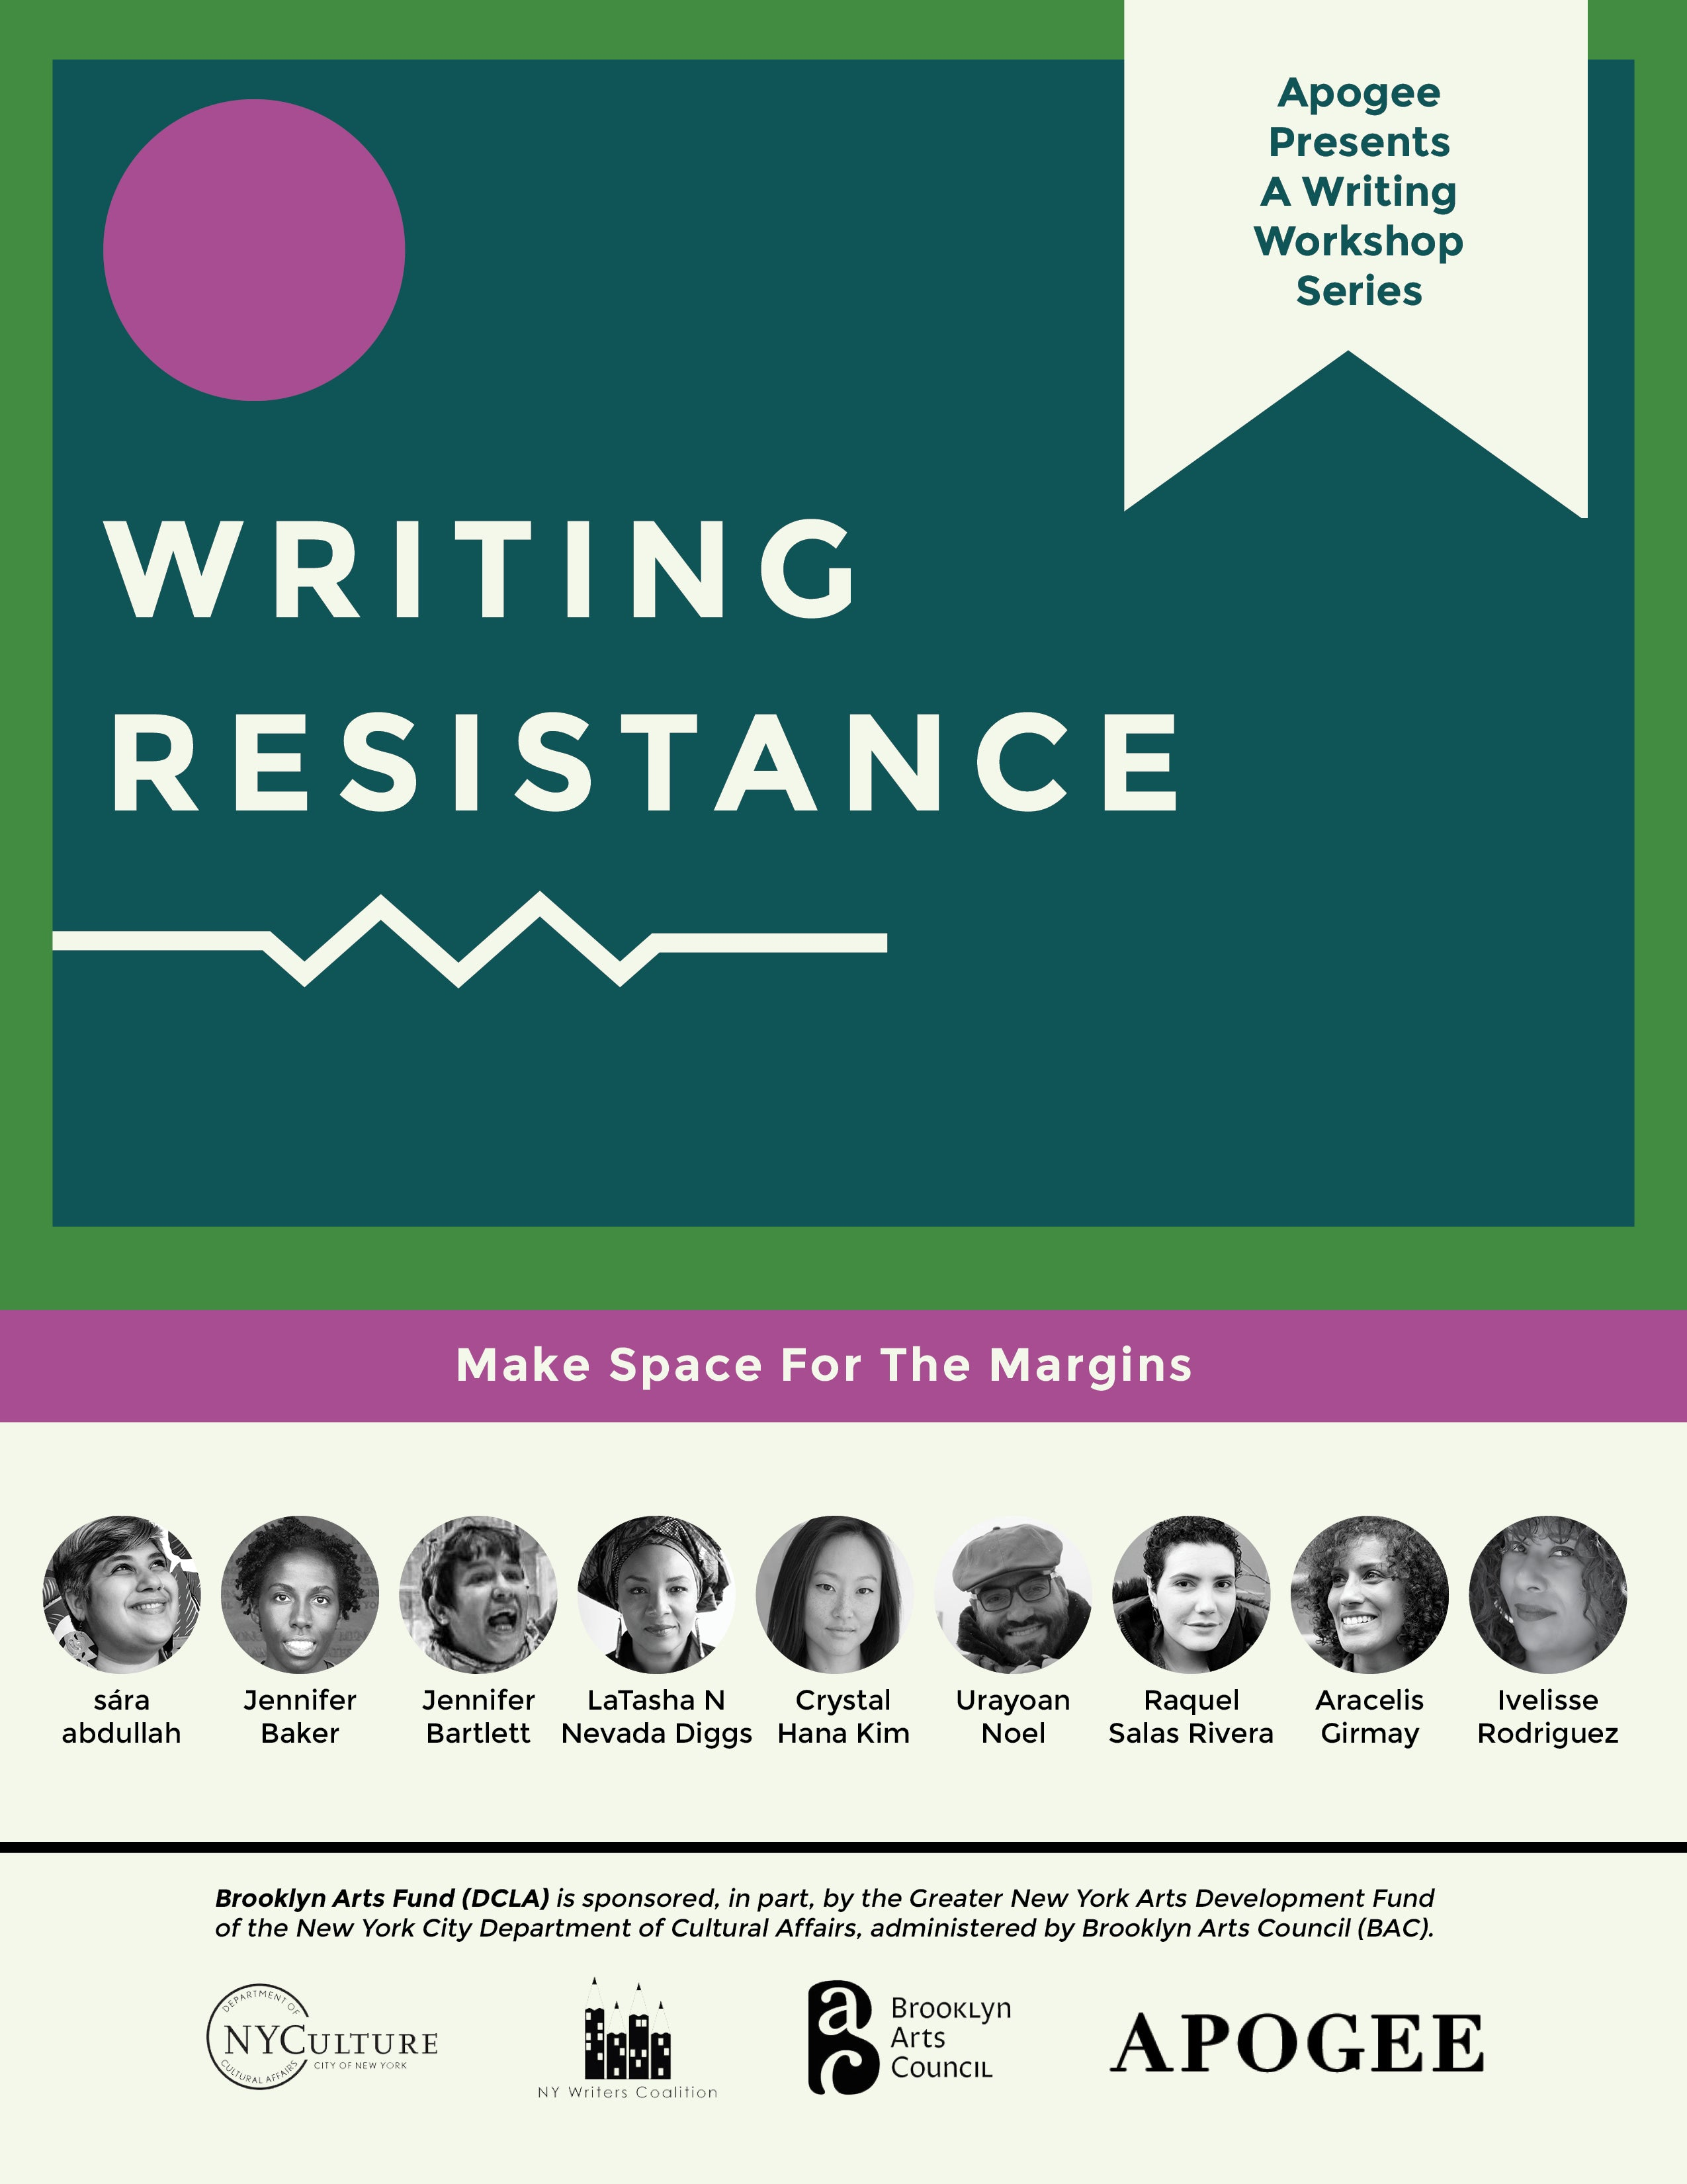 Writing Resistance 3.0